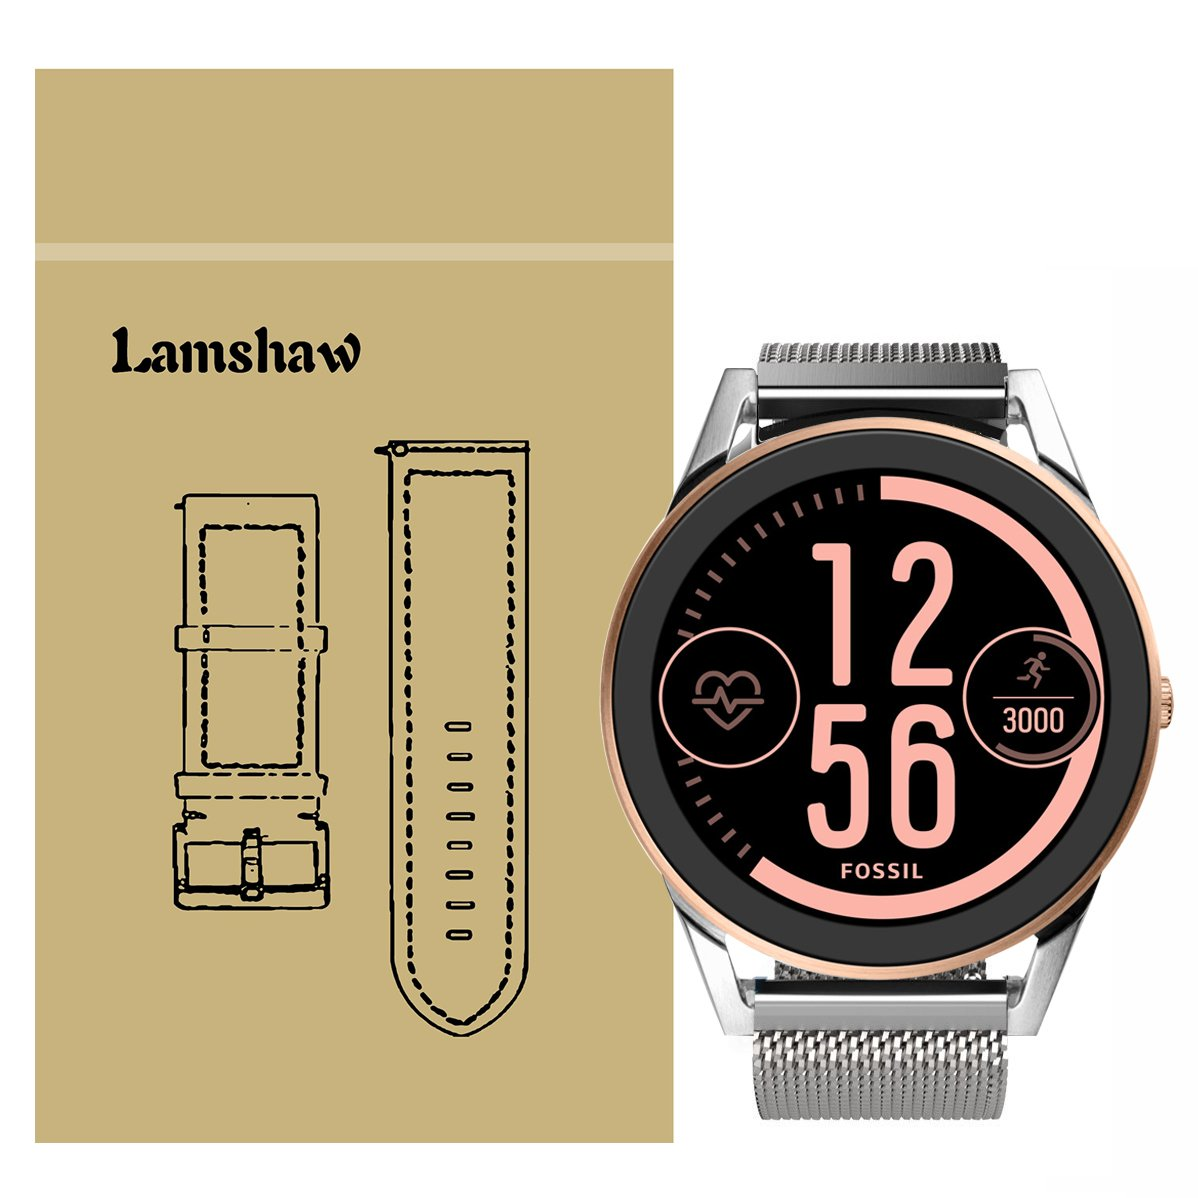 Lamshaw Quick Release Smartwatch Band for Fossil Q Control, Silicone Soft Band with Ventilation Holes Replacement for Fossil Gen 3 Sport SMARTWATCH - ...